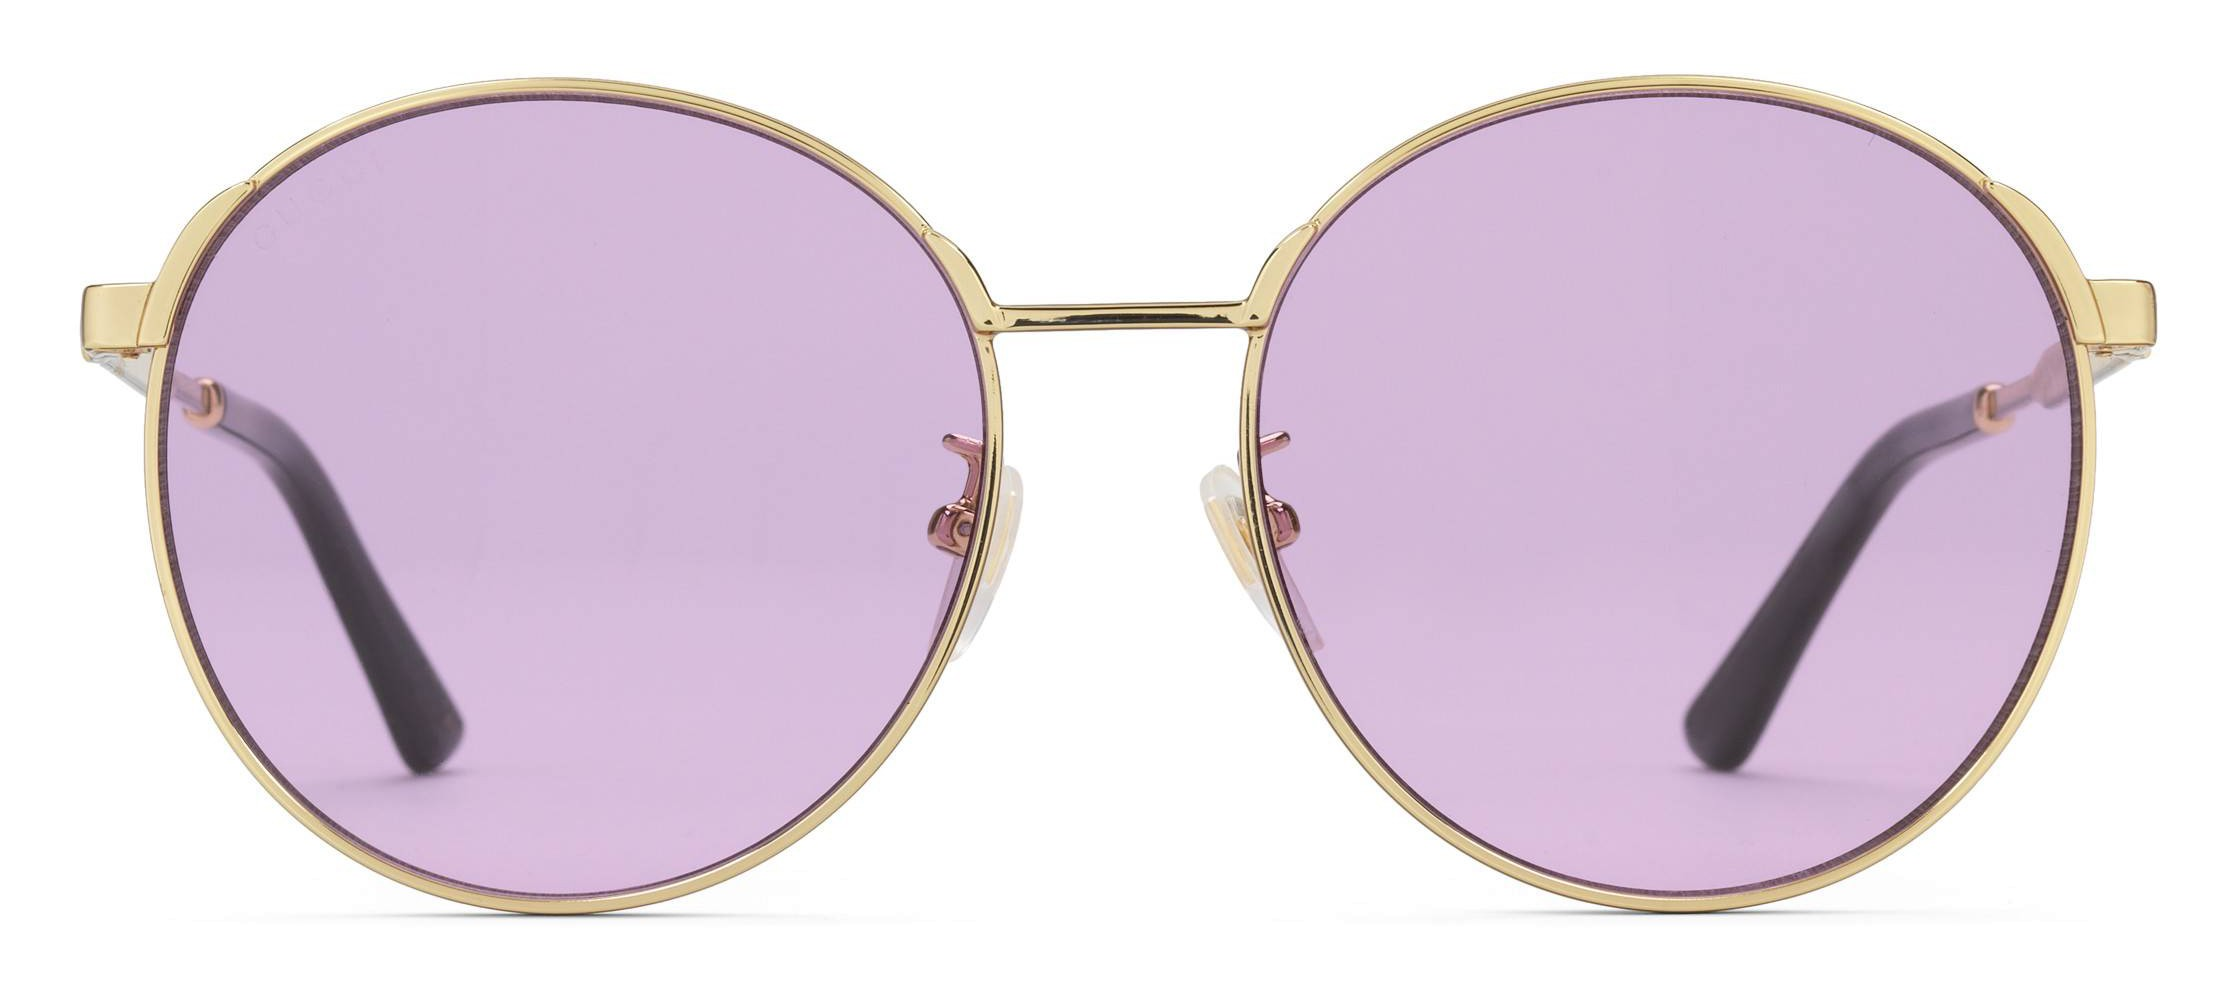 69ea09c40e9 Gucci - Round Frame Metal Sunglasses - Gold with Green and Red Web Detail -  Gucci Eyewear